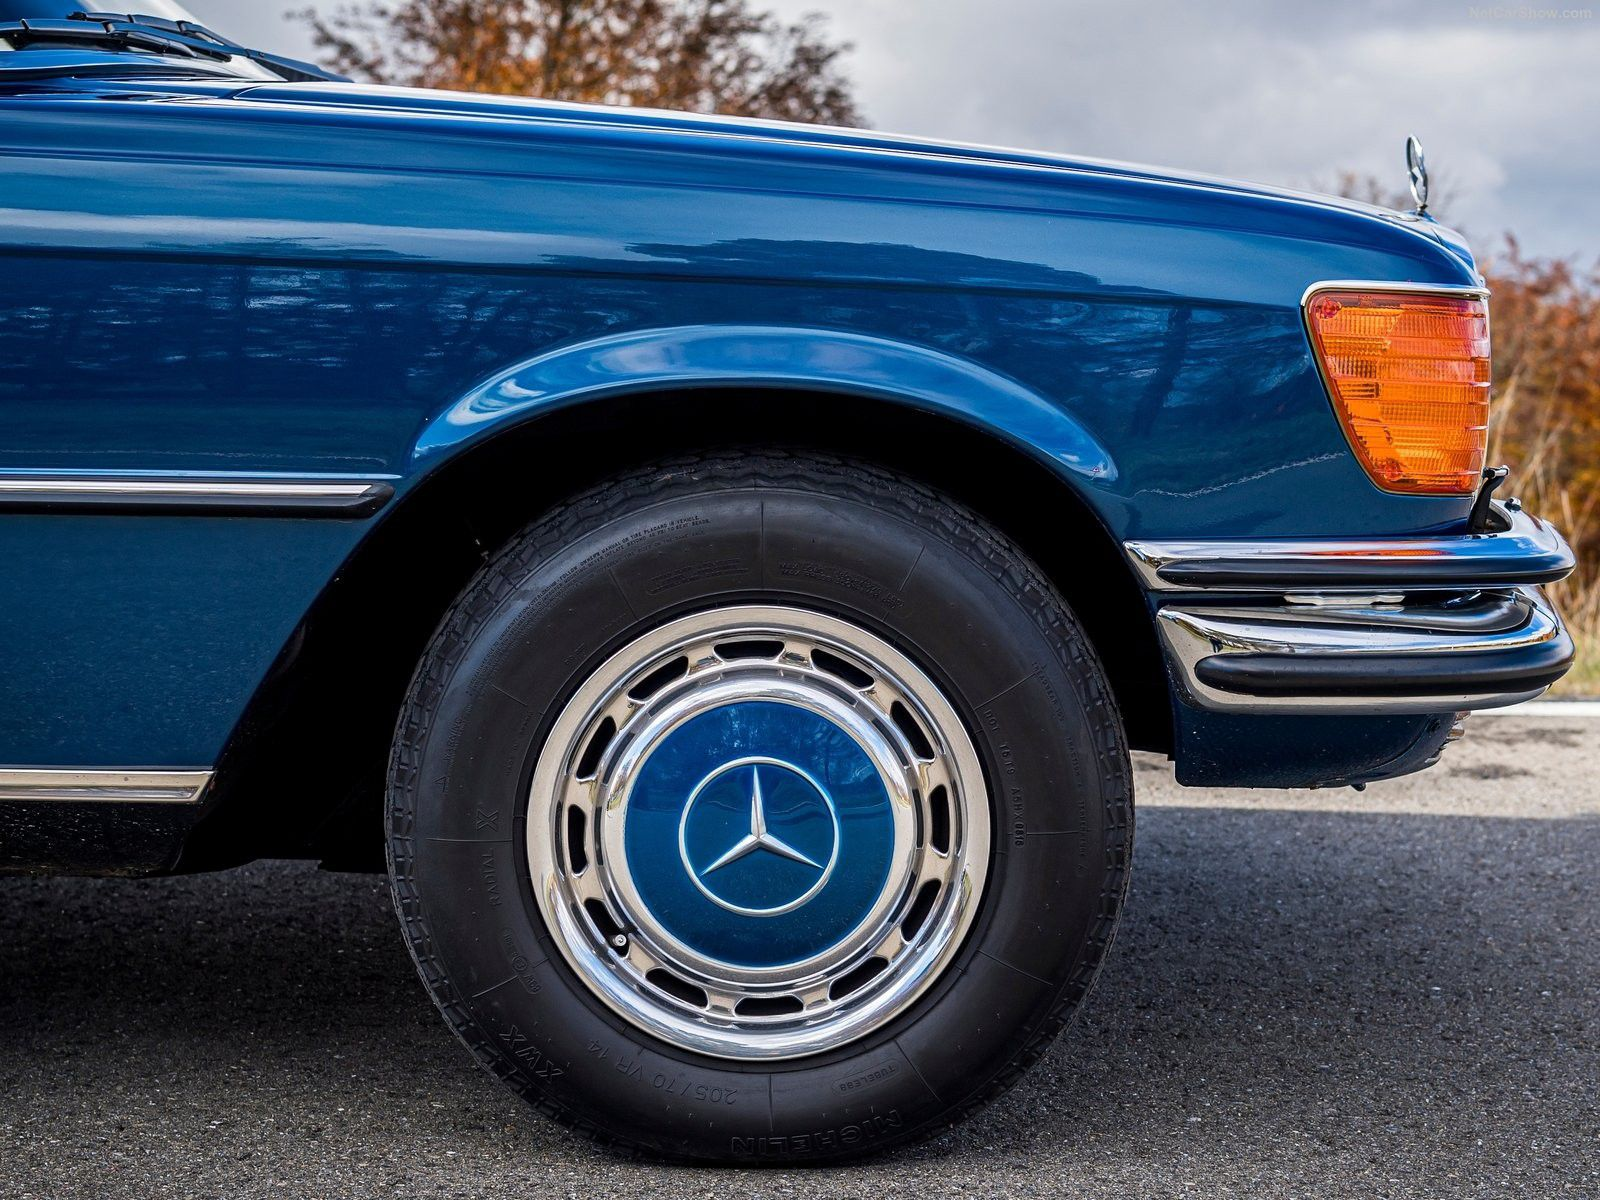 VOITURES DE LEGENDE (1230) : MERCEDES-BENZ  350 SE W116 - 1972